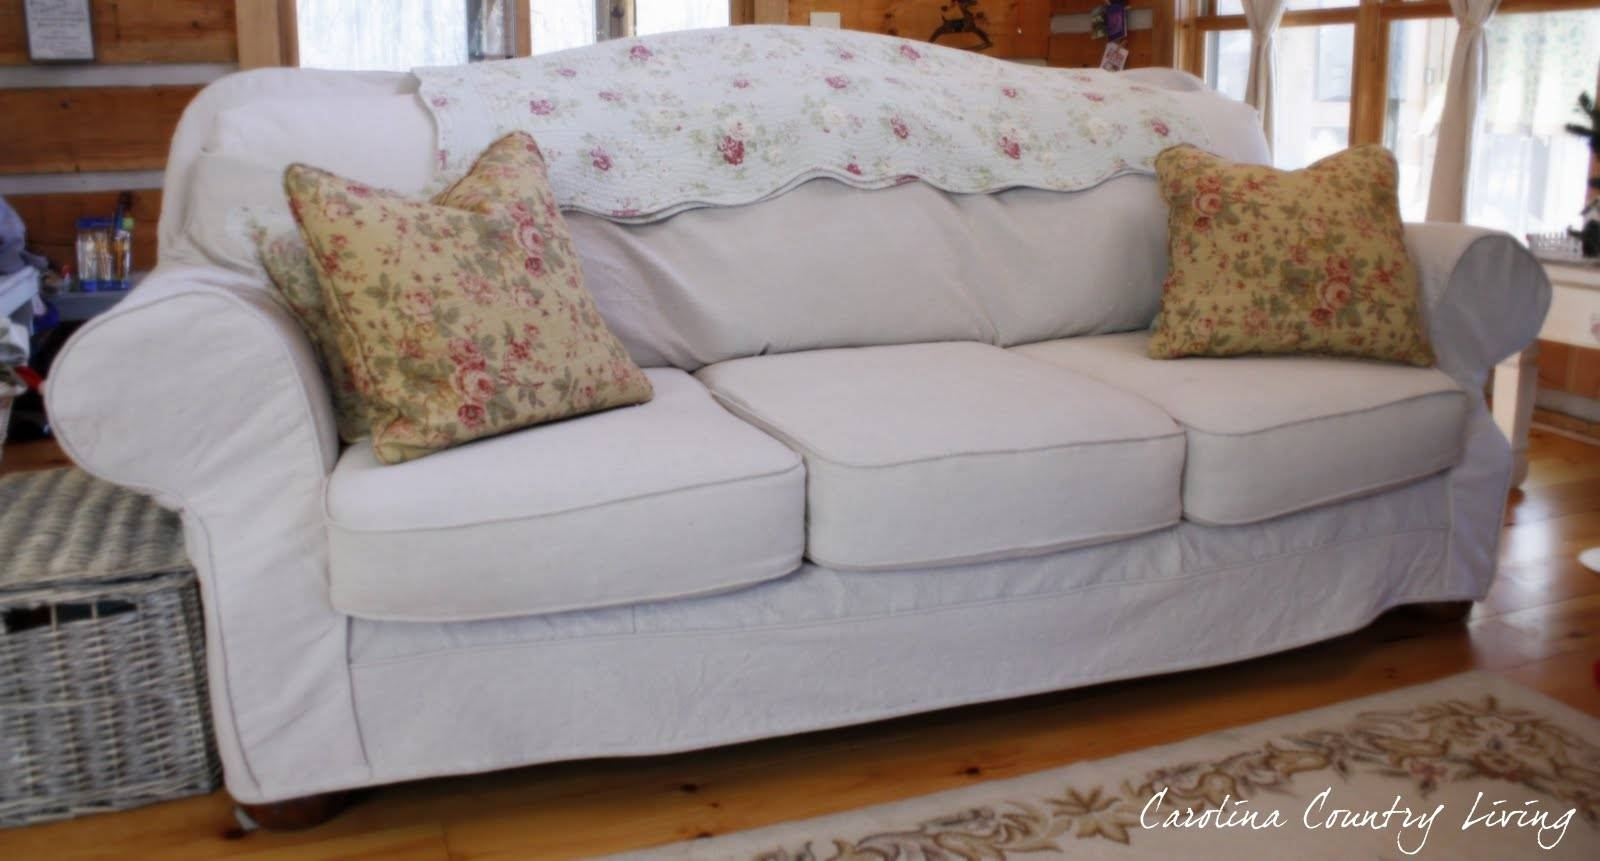 Carolina Country Living: Drop Cloth Sofa Slipcover within Camel Back Couch Slipcovers (Image 5 of 15)